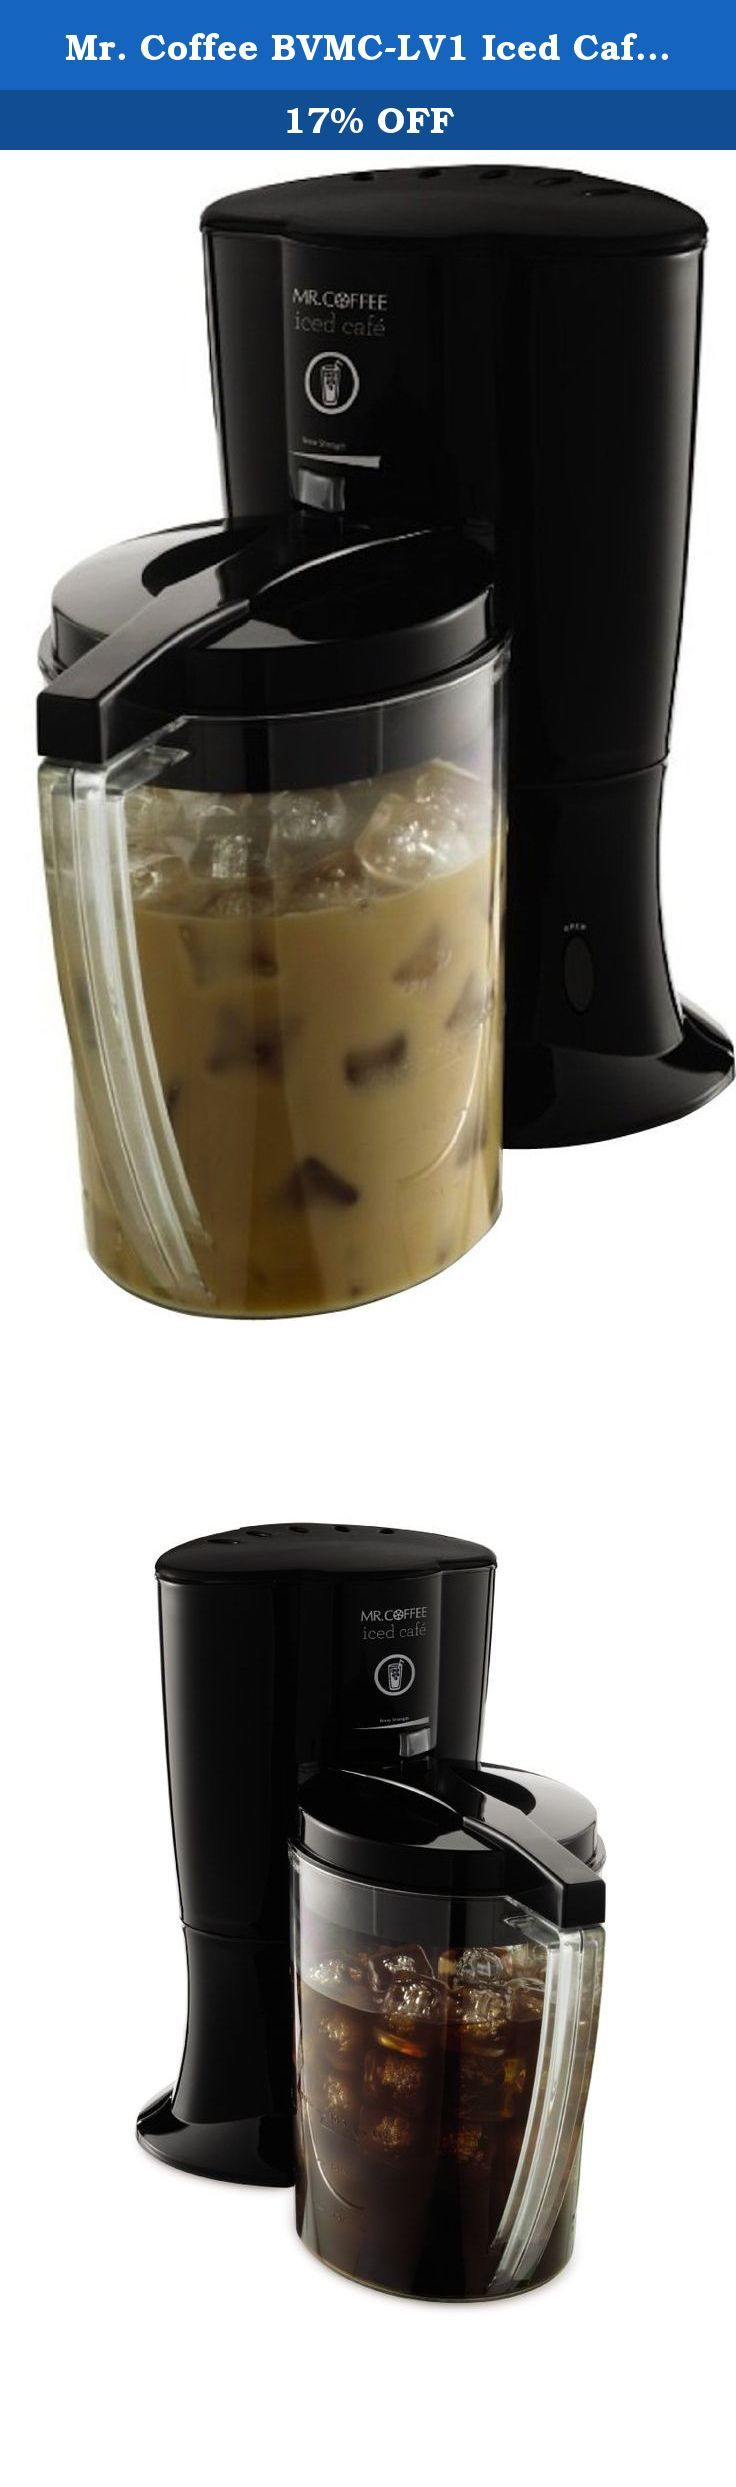 Mr. Coffee BVMCLV1 Iced Cafe Iced Coffee Maker, Black. Mr